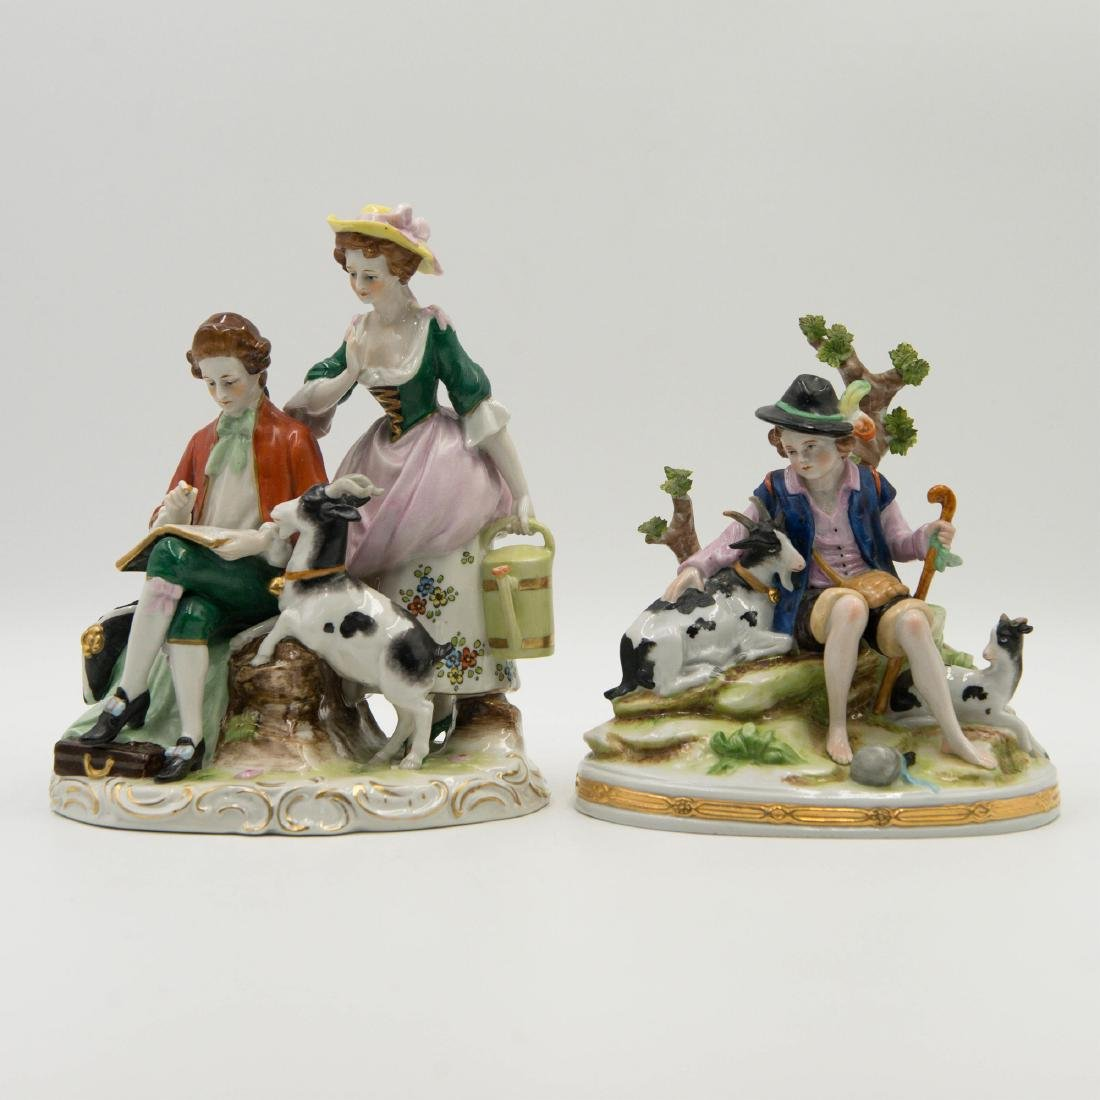 GROUP OF 2 SCHEIBE ALSBACH KISTER GERMAN PORCELAIN